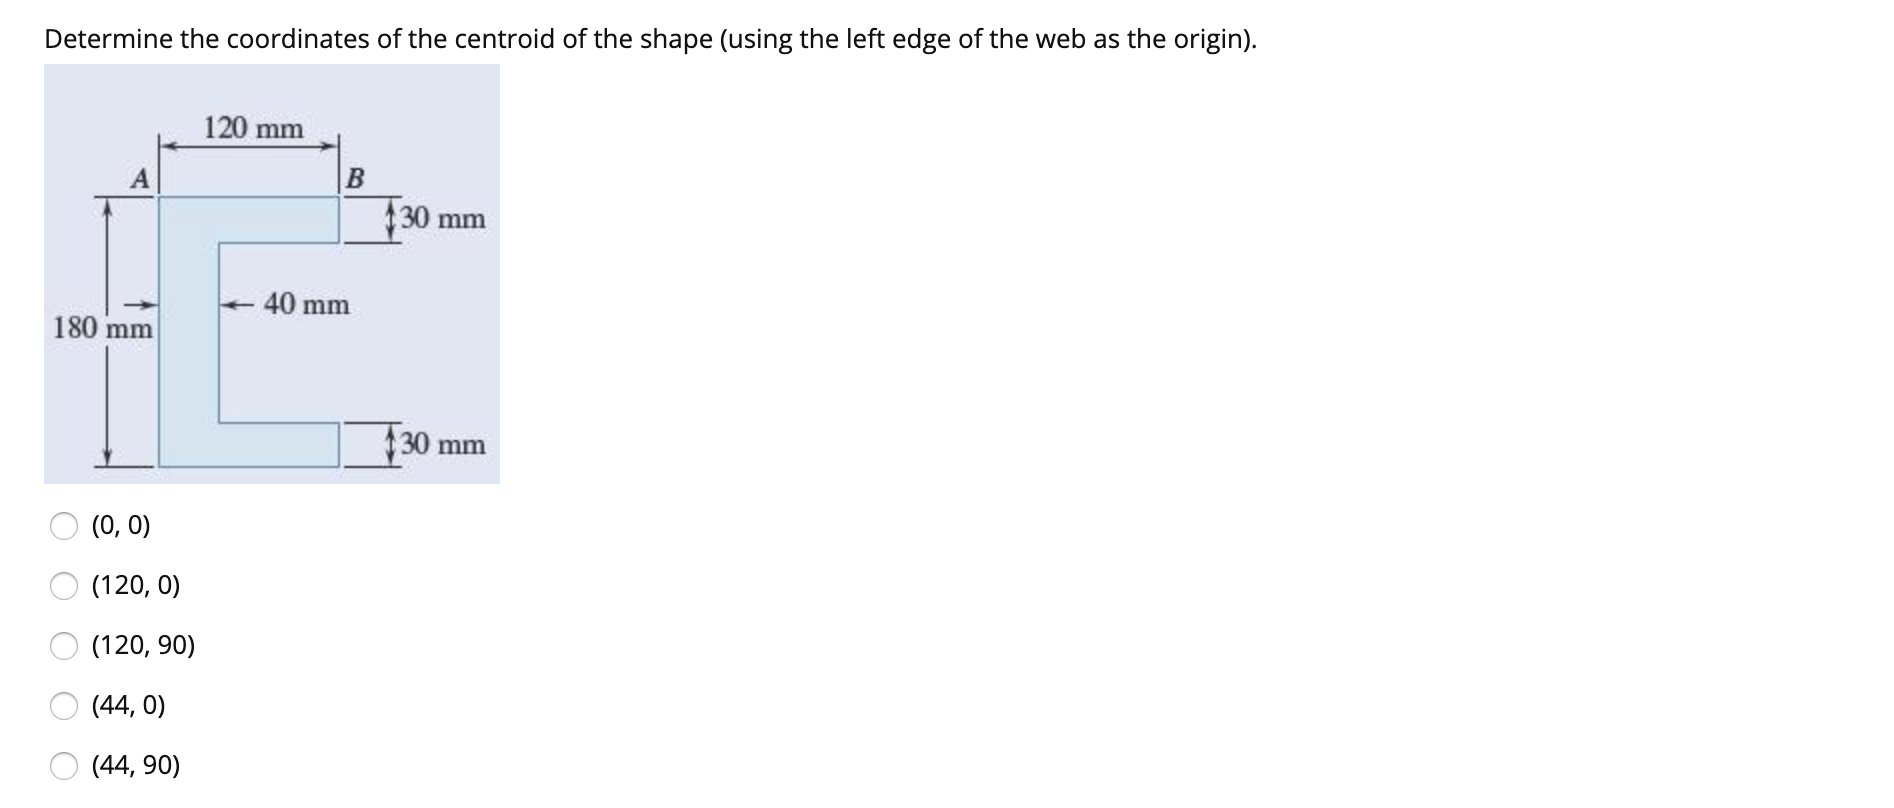 Determine the coordinates of the centroid of the shape (using the left edge of the web as the origin) 120 mm В $30 mm 40 mm 180 mm 30 mm (0, 0) (120, 0) (120, 90) (44, 0) (44, 90)